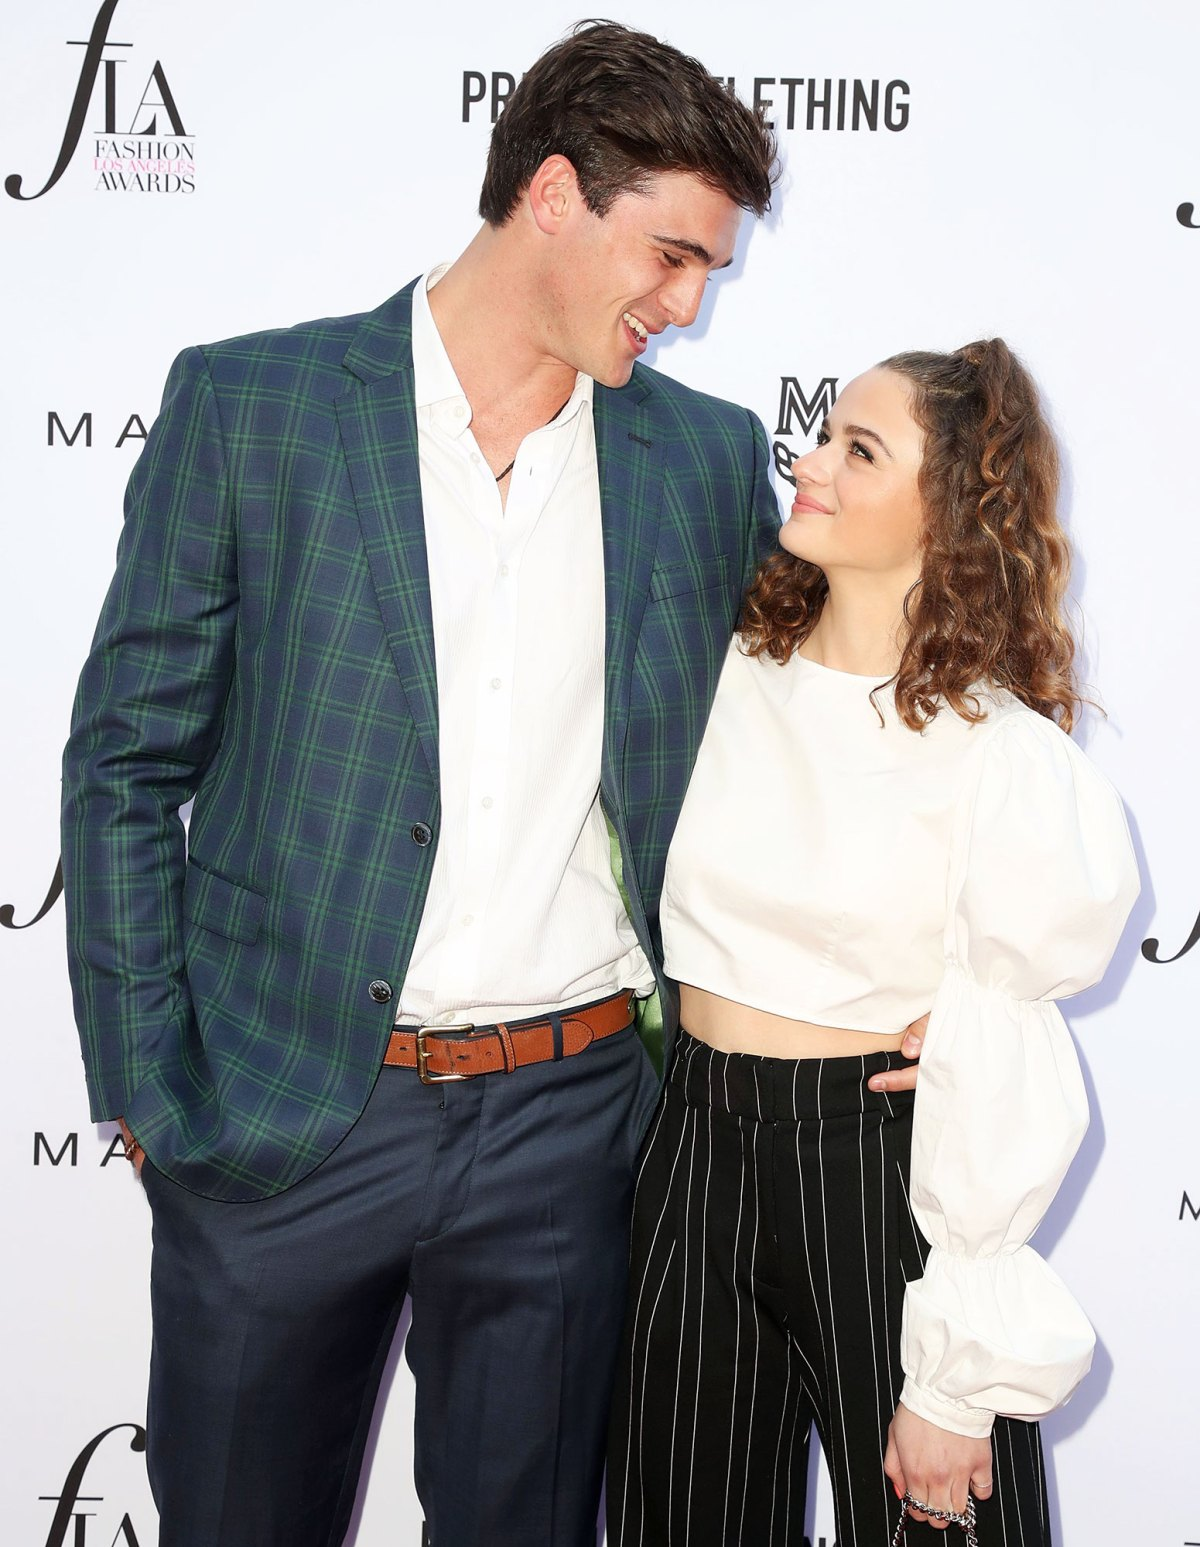 Joey King And Jacob Elordi The Way They Were Under the pact, king, who at age 20 is one of the youngest ever to strike fall 2020 premiere dates. joey king and jacob elordi the way